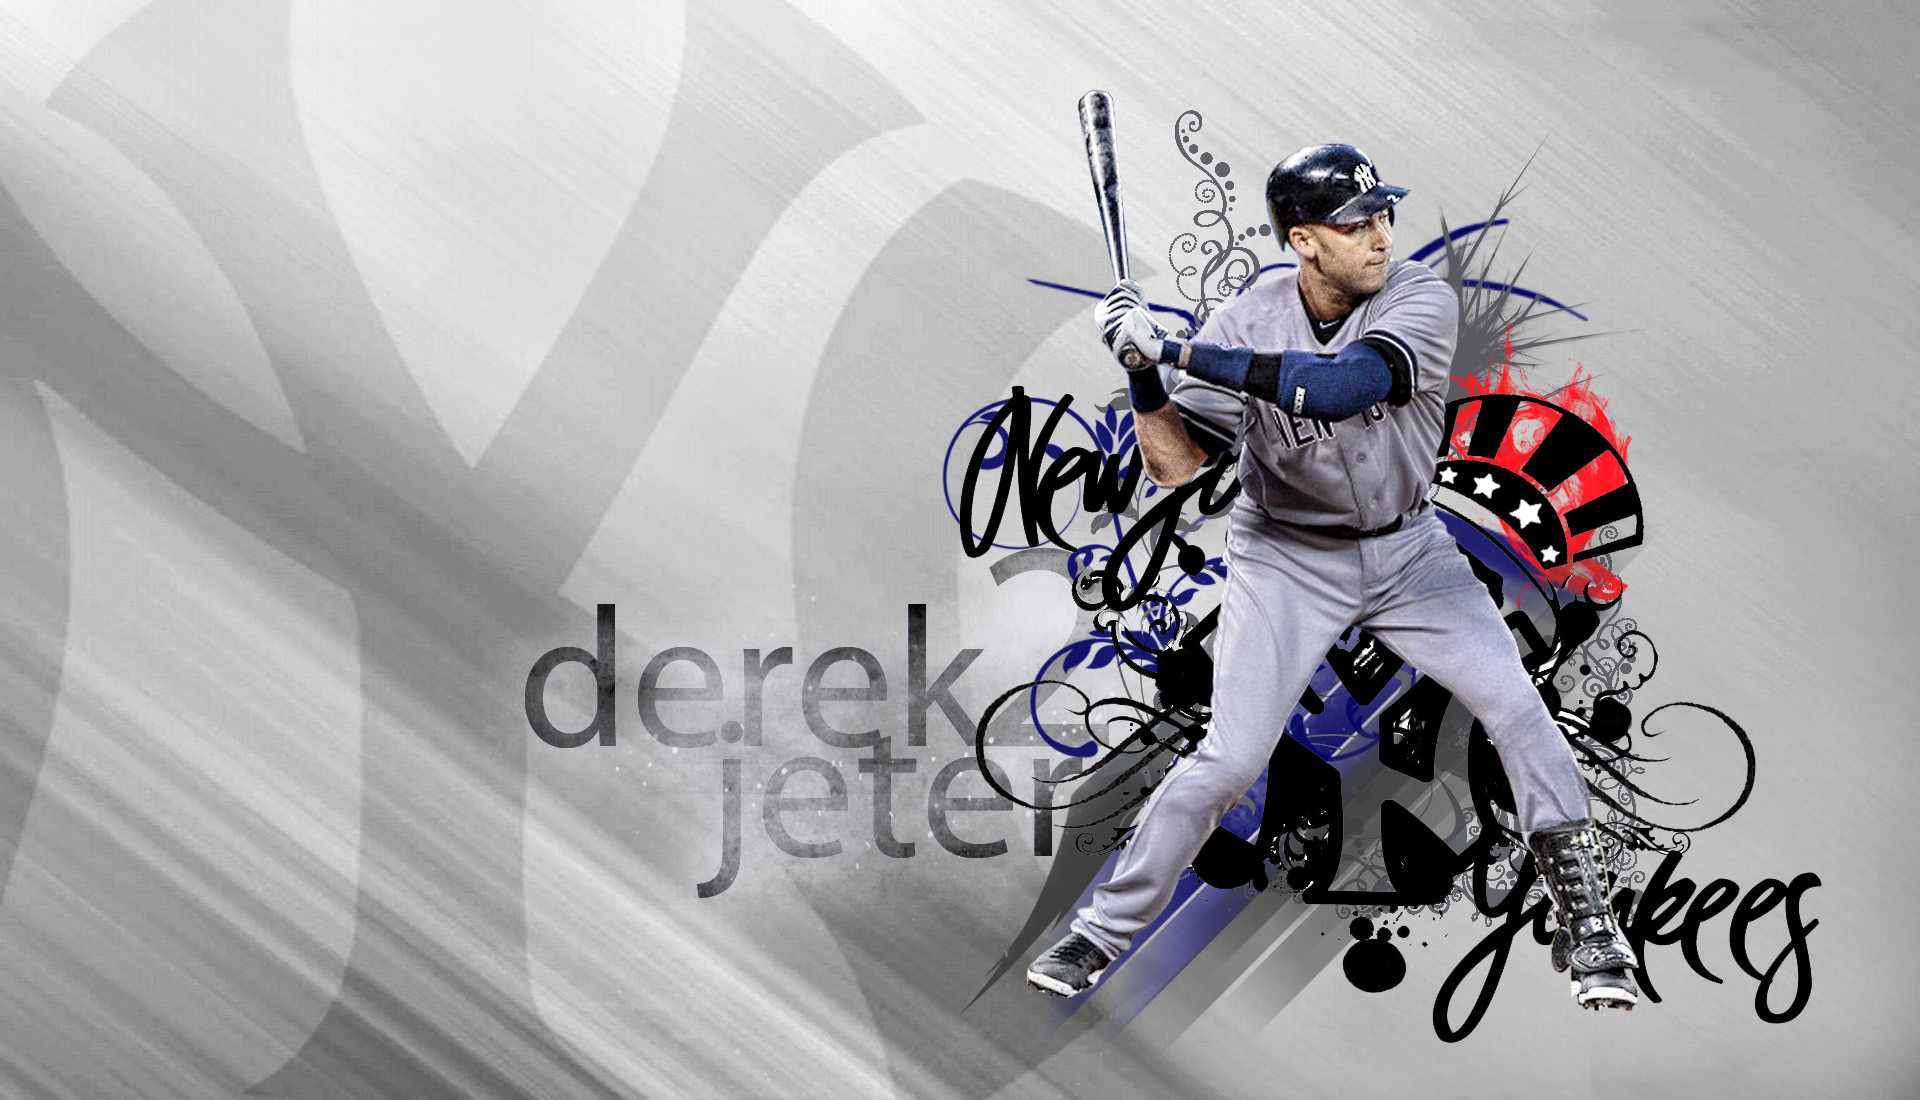 Res: 1920x1100, NEW YORK YANKEES baseball mlb fe wallpaper |  | 158219 |  WallpaperUP